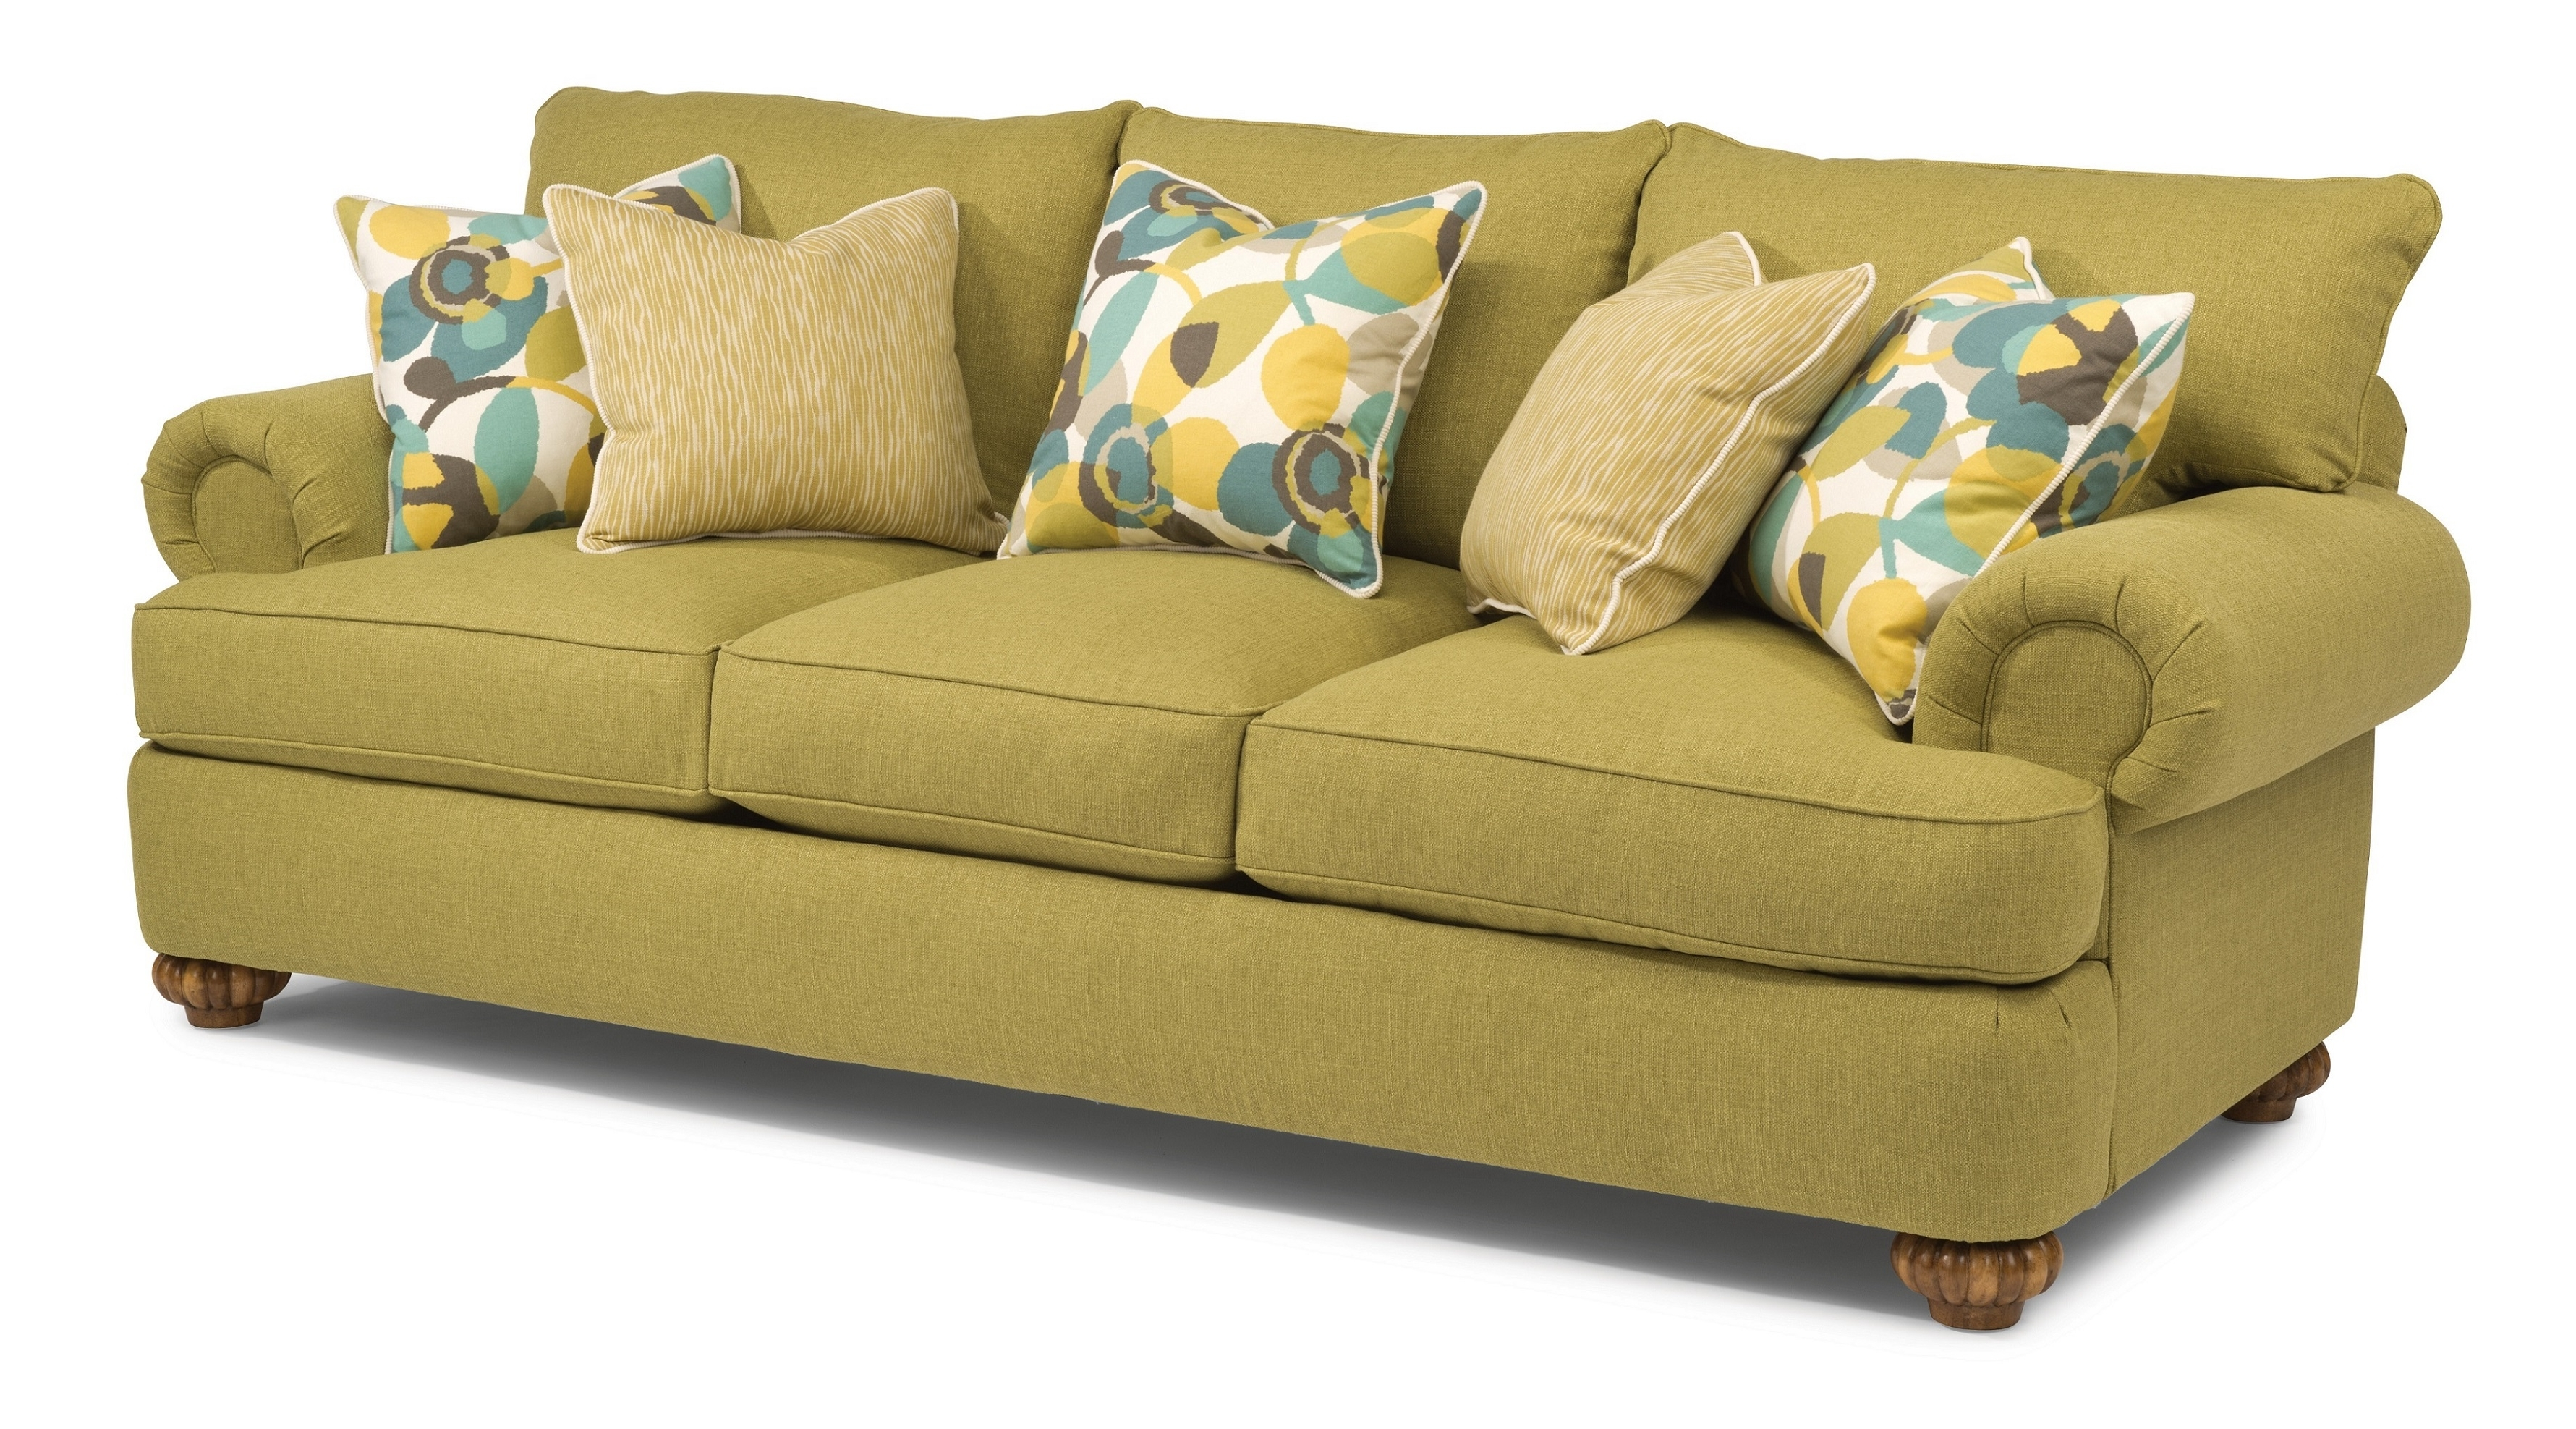 Kansas City Sectional Sofas For Popular Annabelle – Sofa – 7321 31 Sofas From Flexsteel At Crowley Furniture (View 8 of 15)